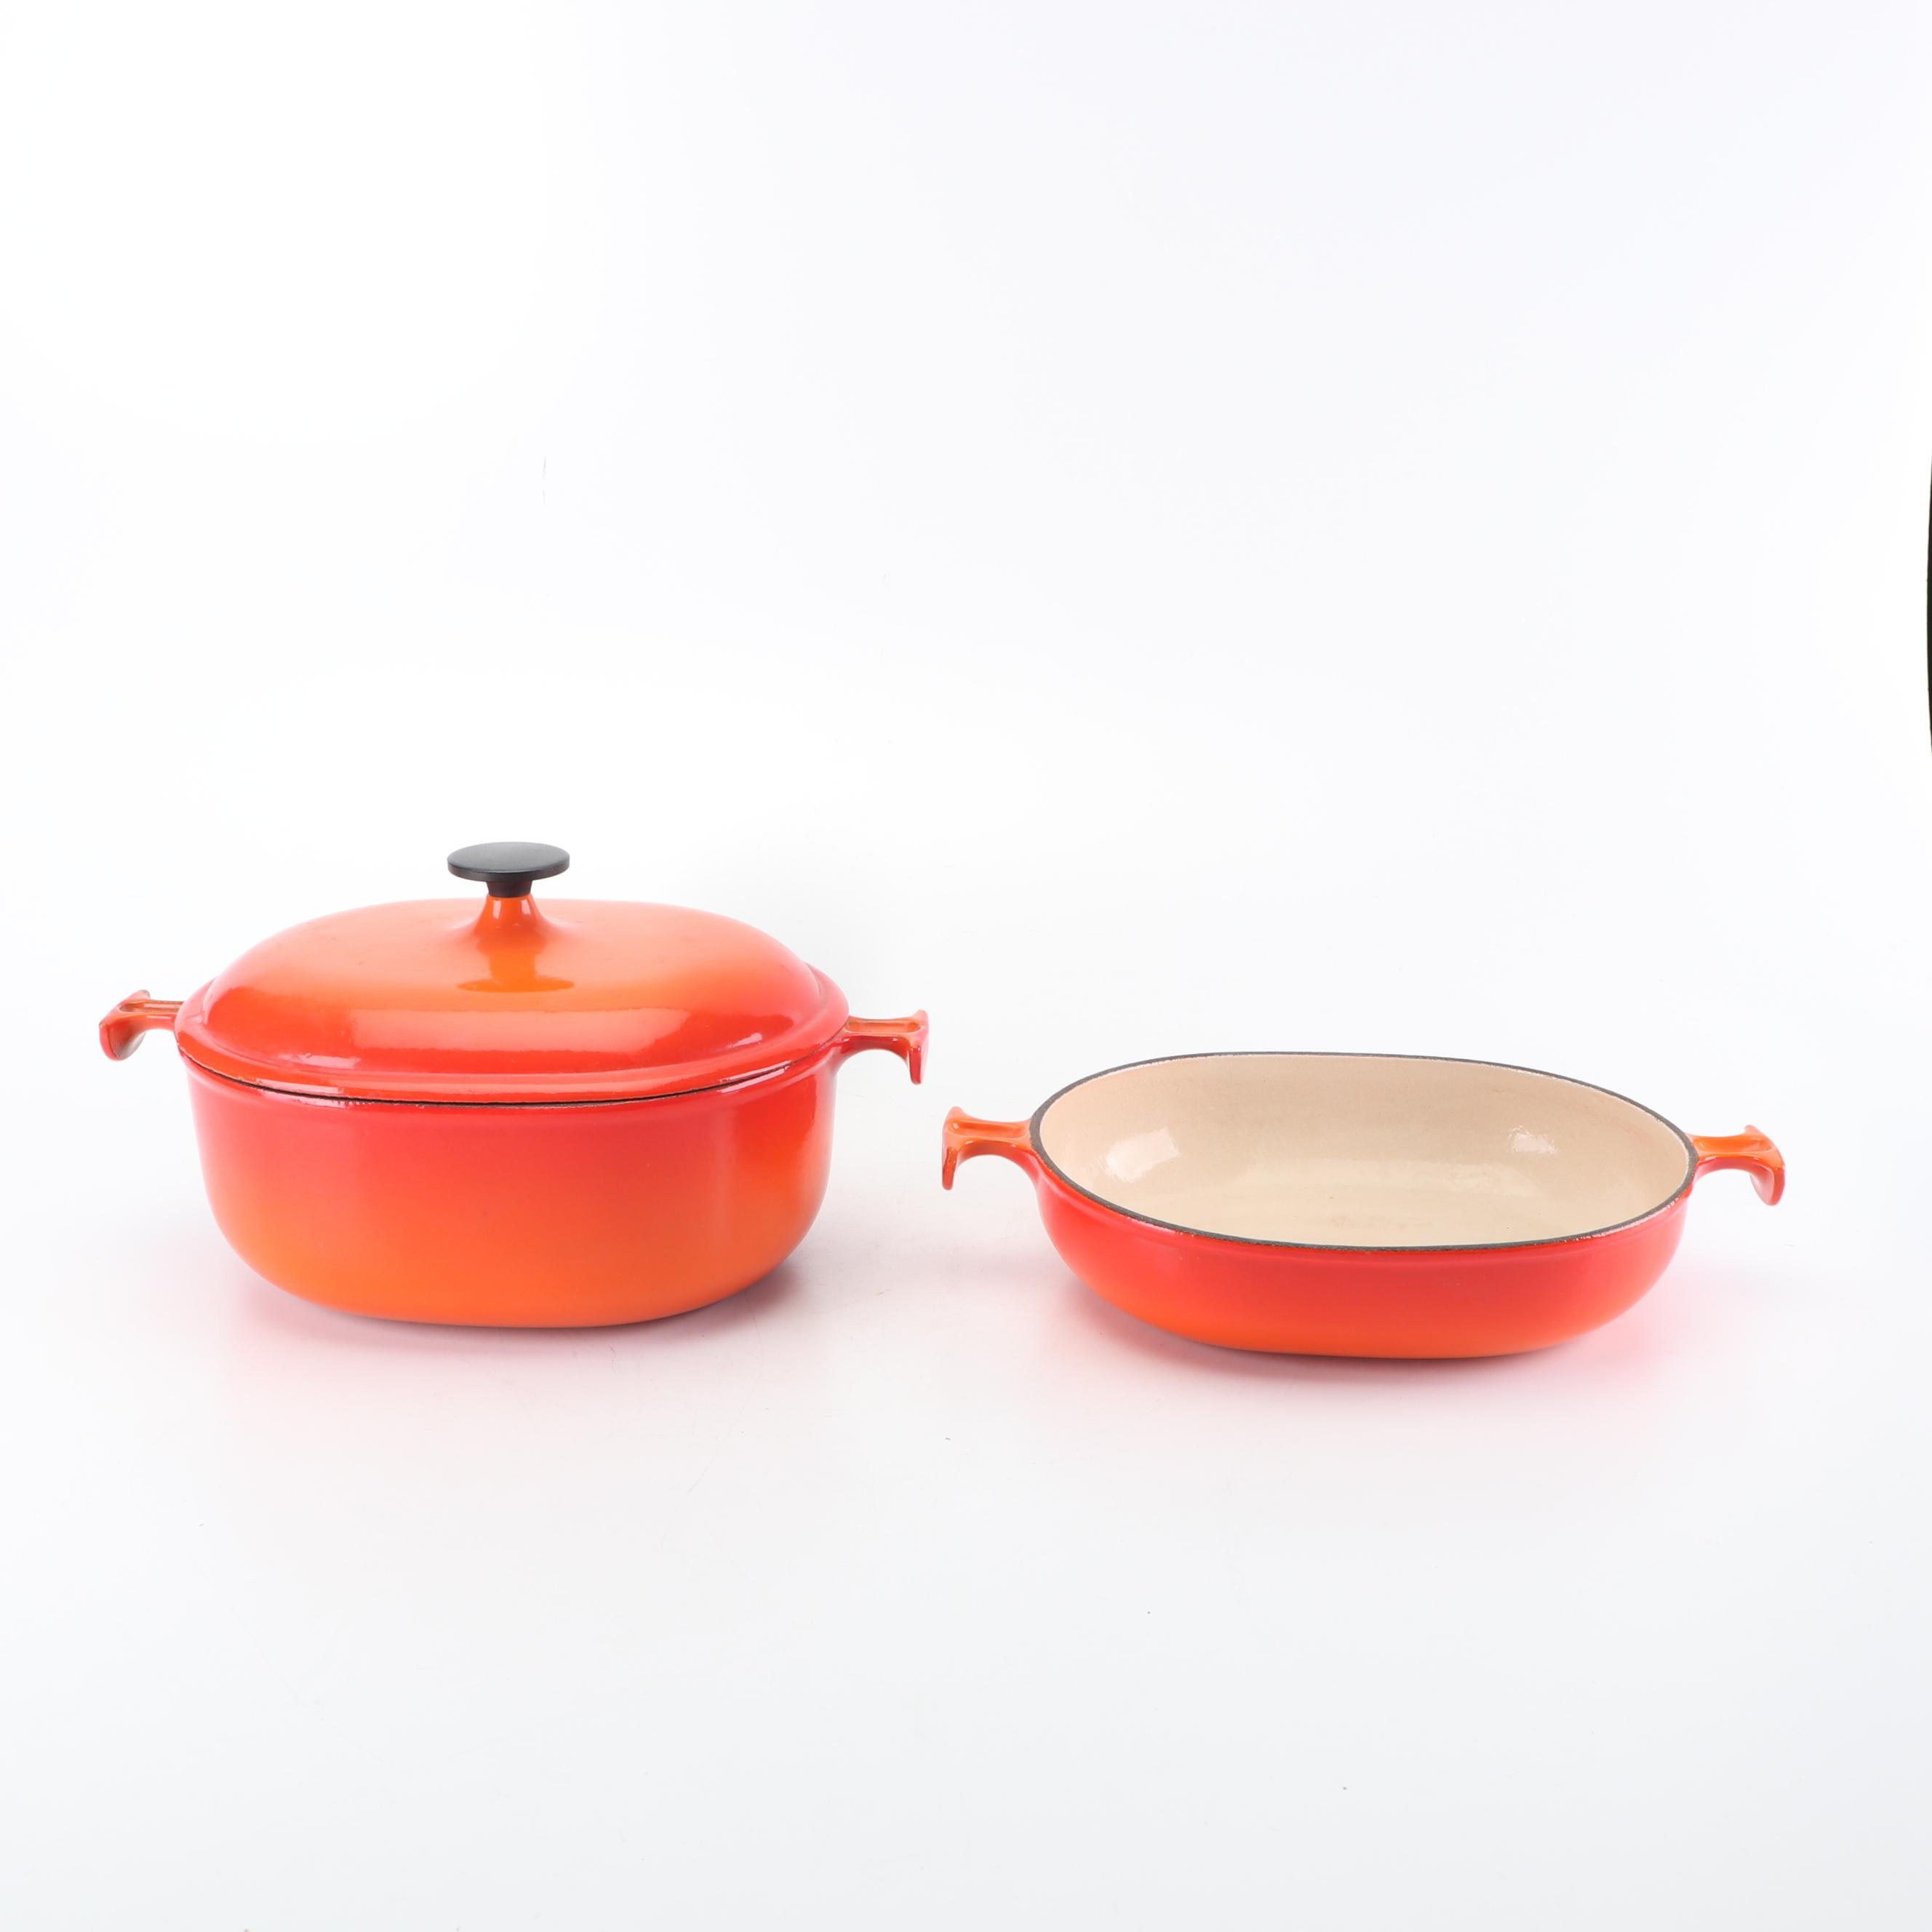 Le Creuset Enameled Cast Iron Covered Casserole with Baking Dish